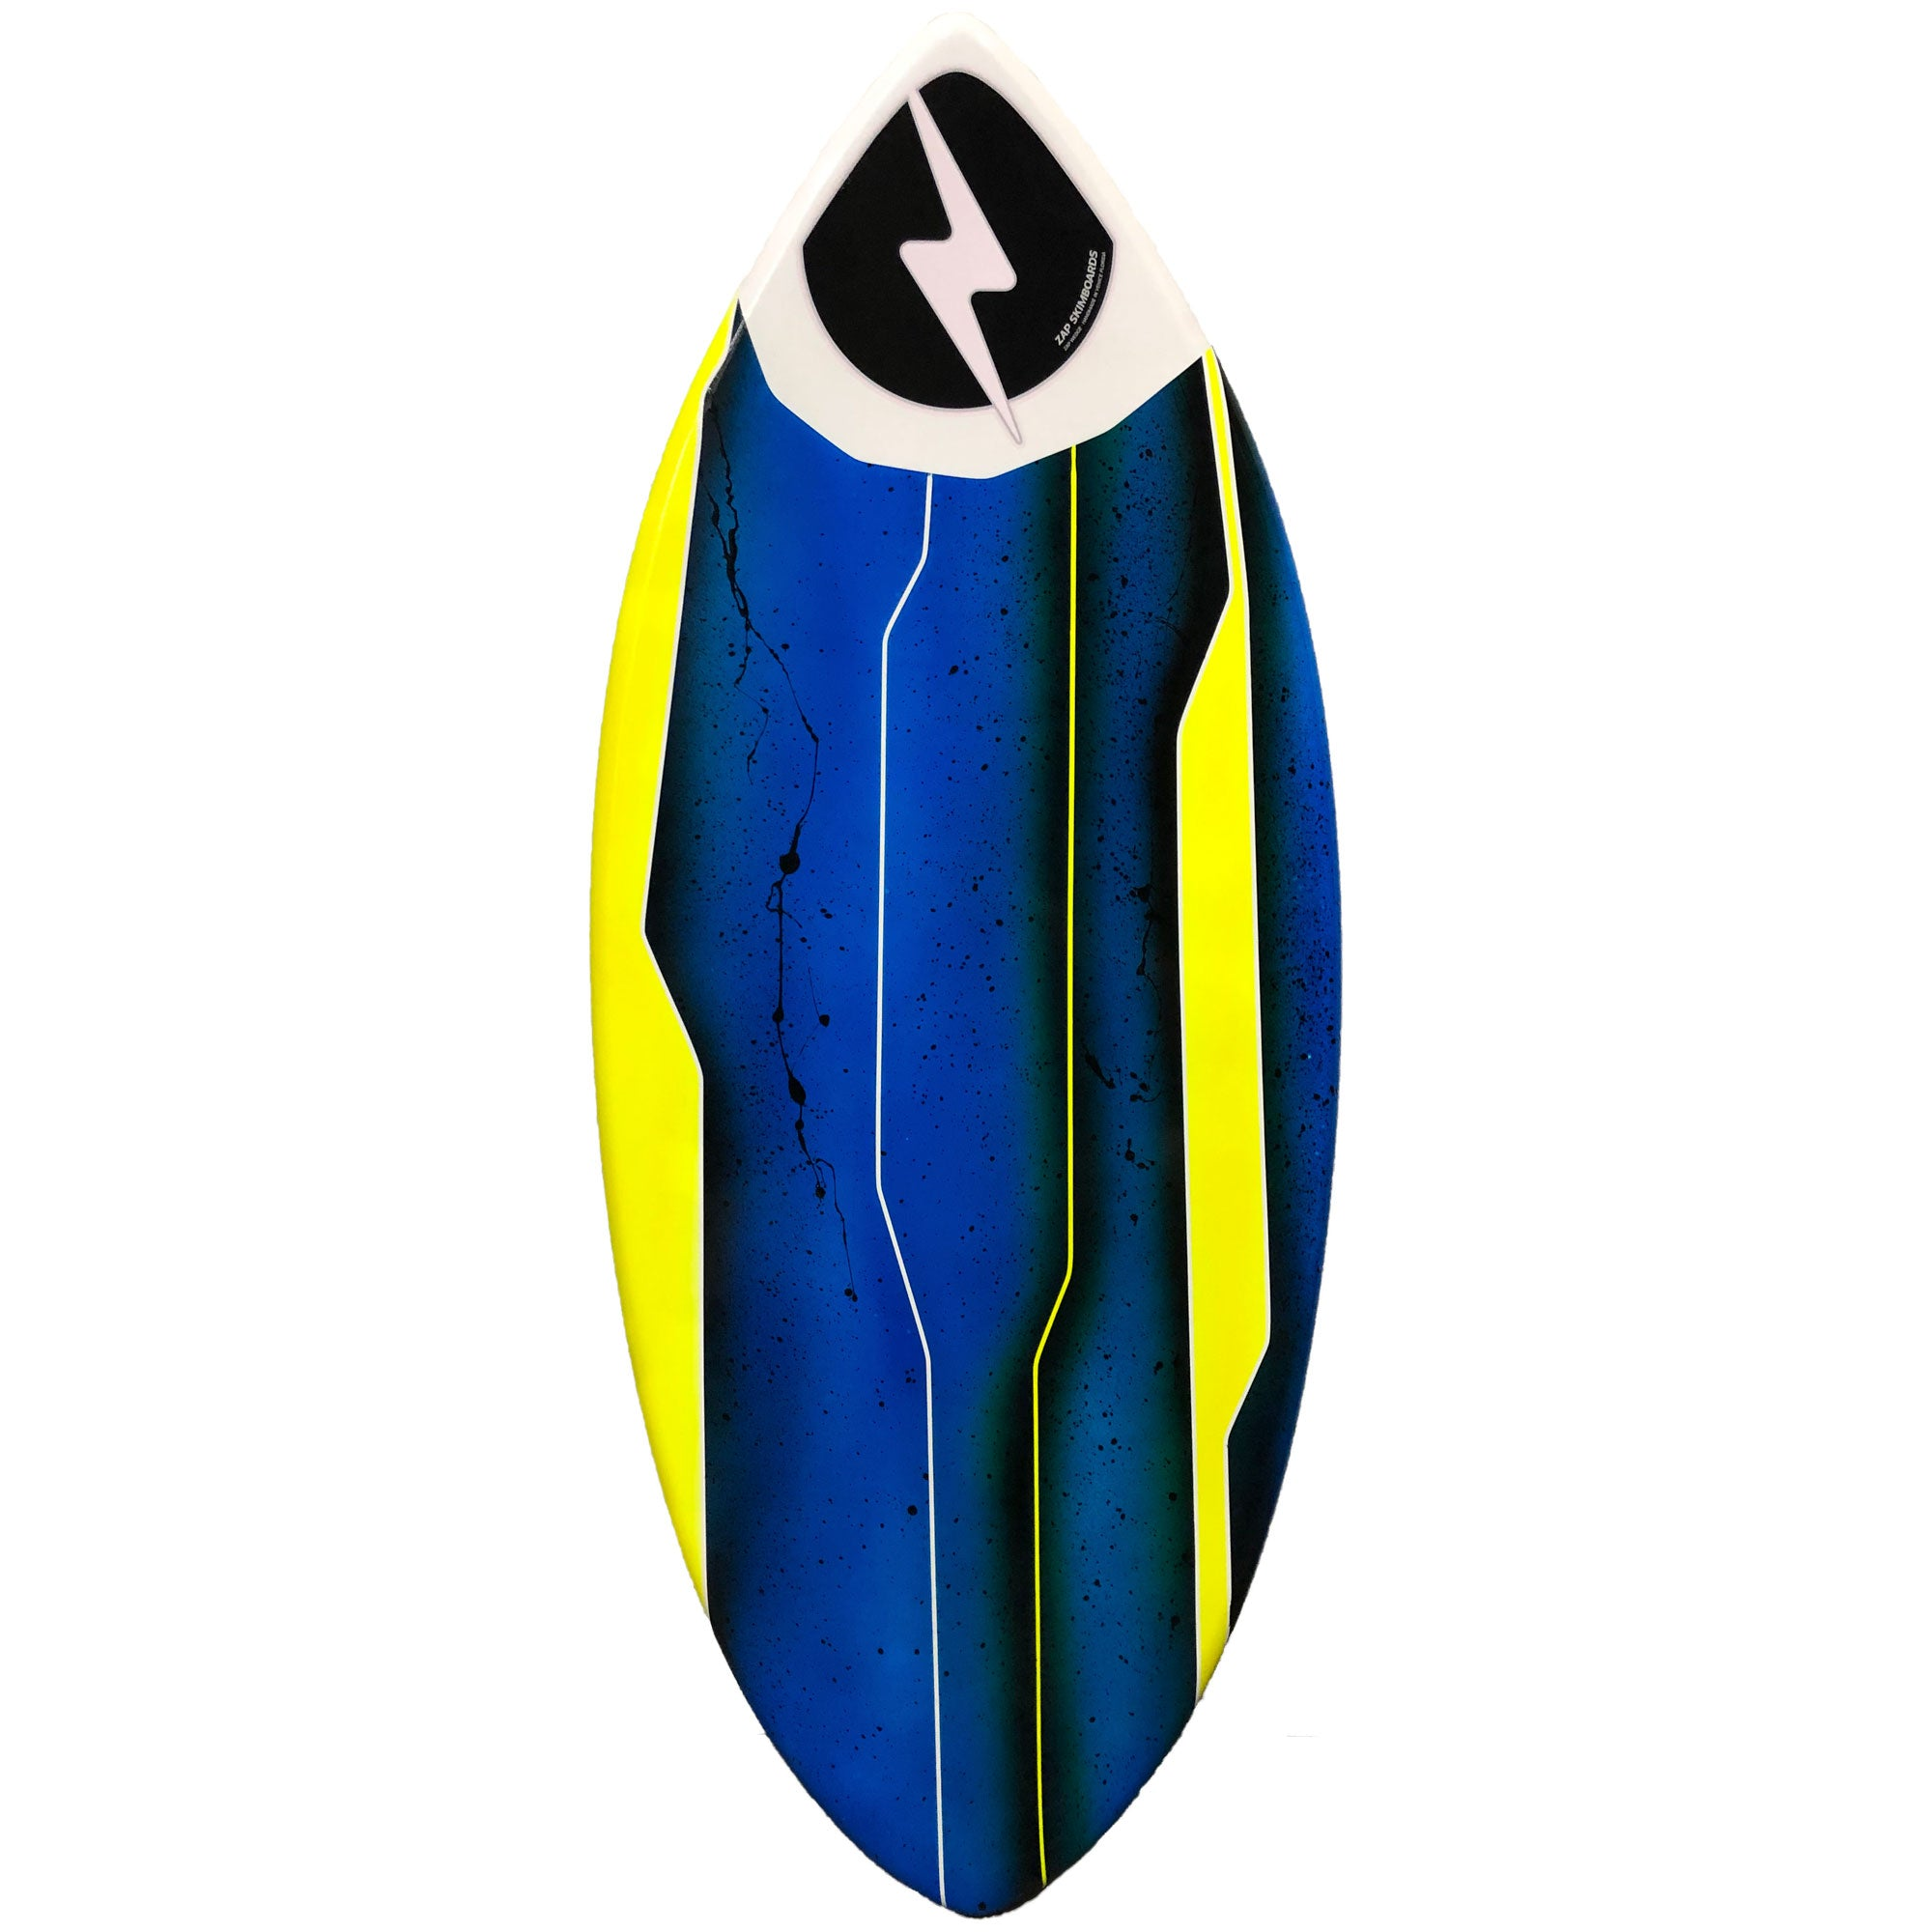 "Zap Wedge 49"" Skimboard w/ Art - Blue/Yellow"